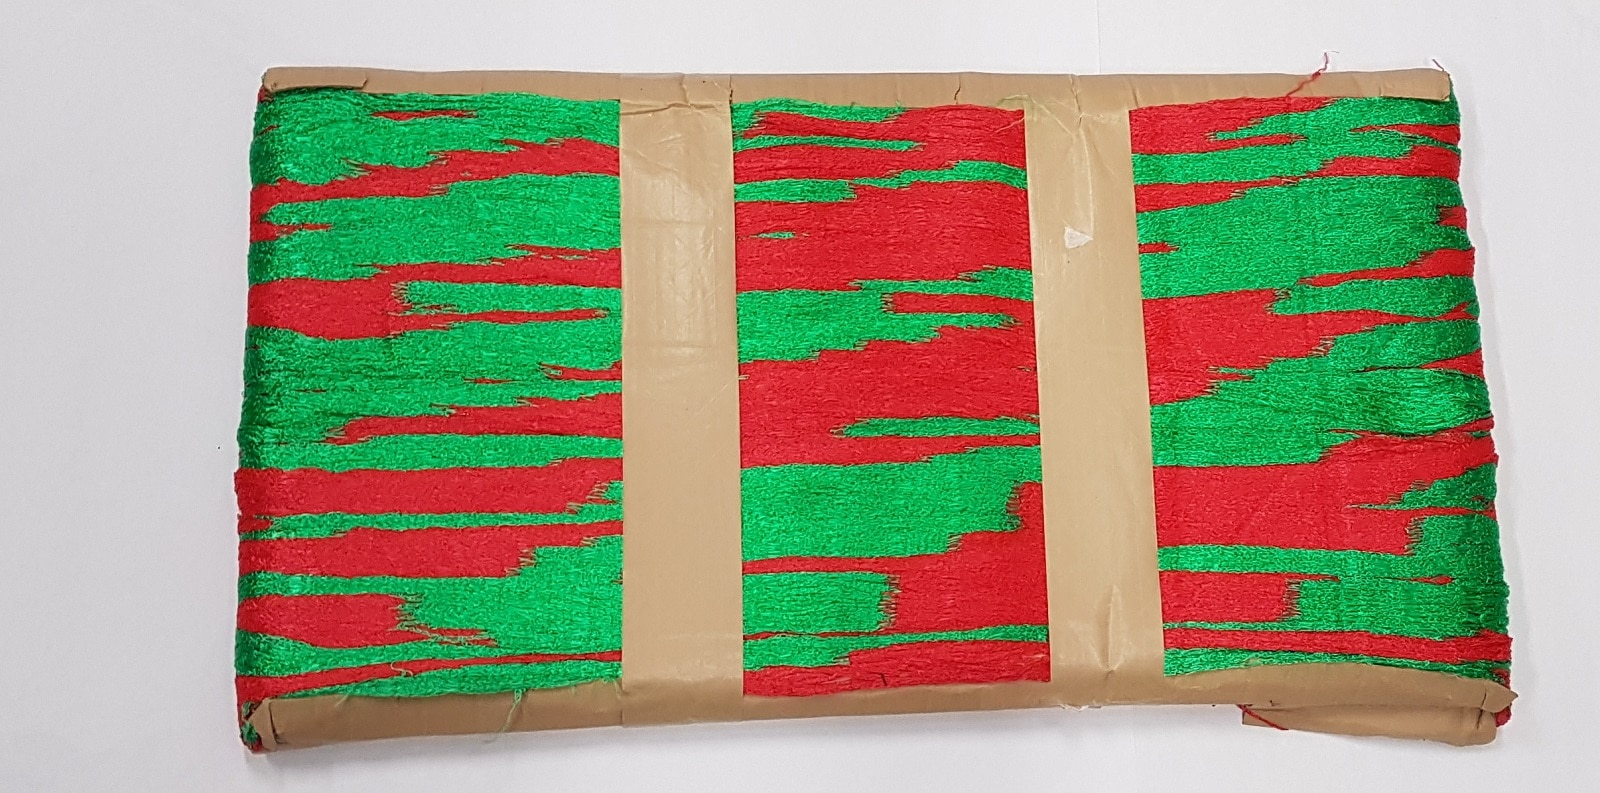 26 Knitted Netting – Colour – Red and Green